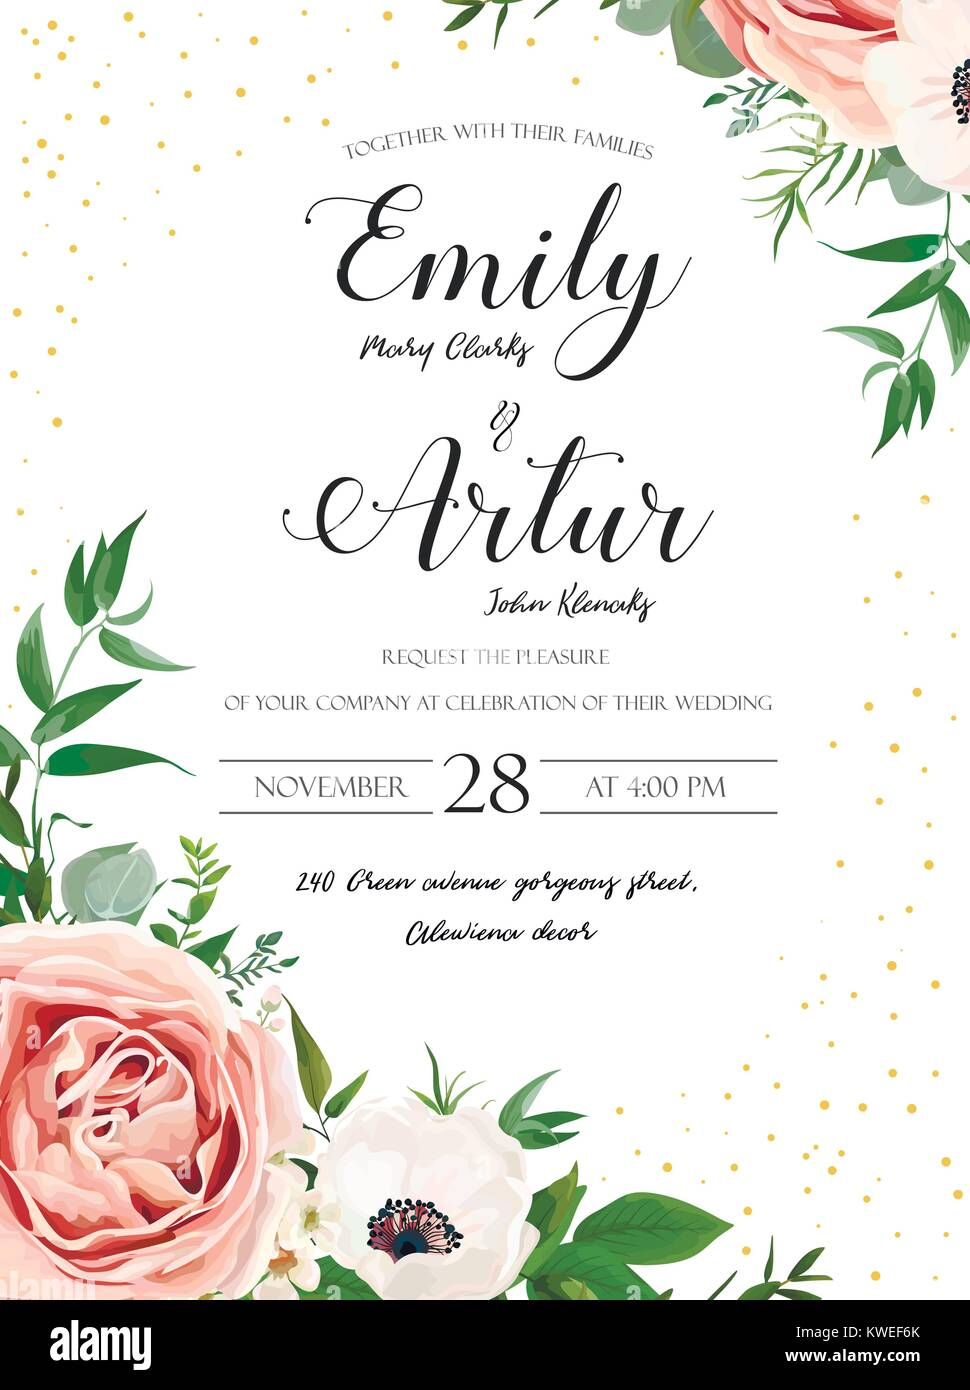 Wedding floral invite invitation card design: Rose pink lavender flower, white anemones, wax, Eucalyptus branch - Stock Vector